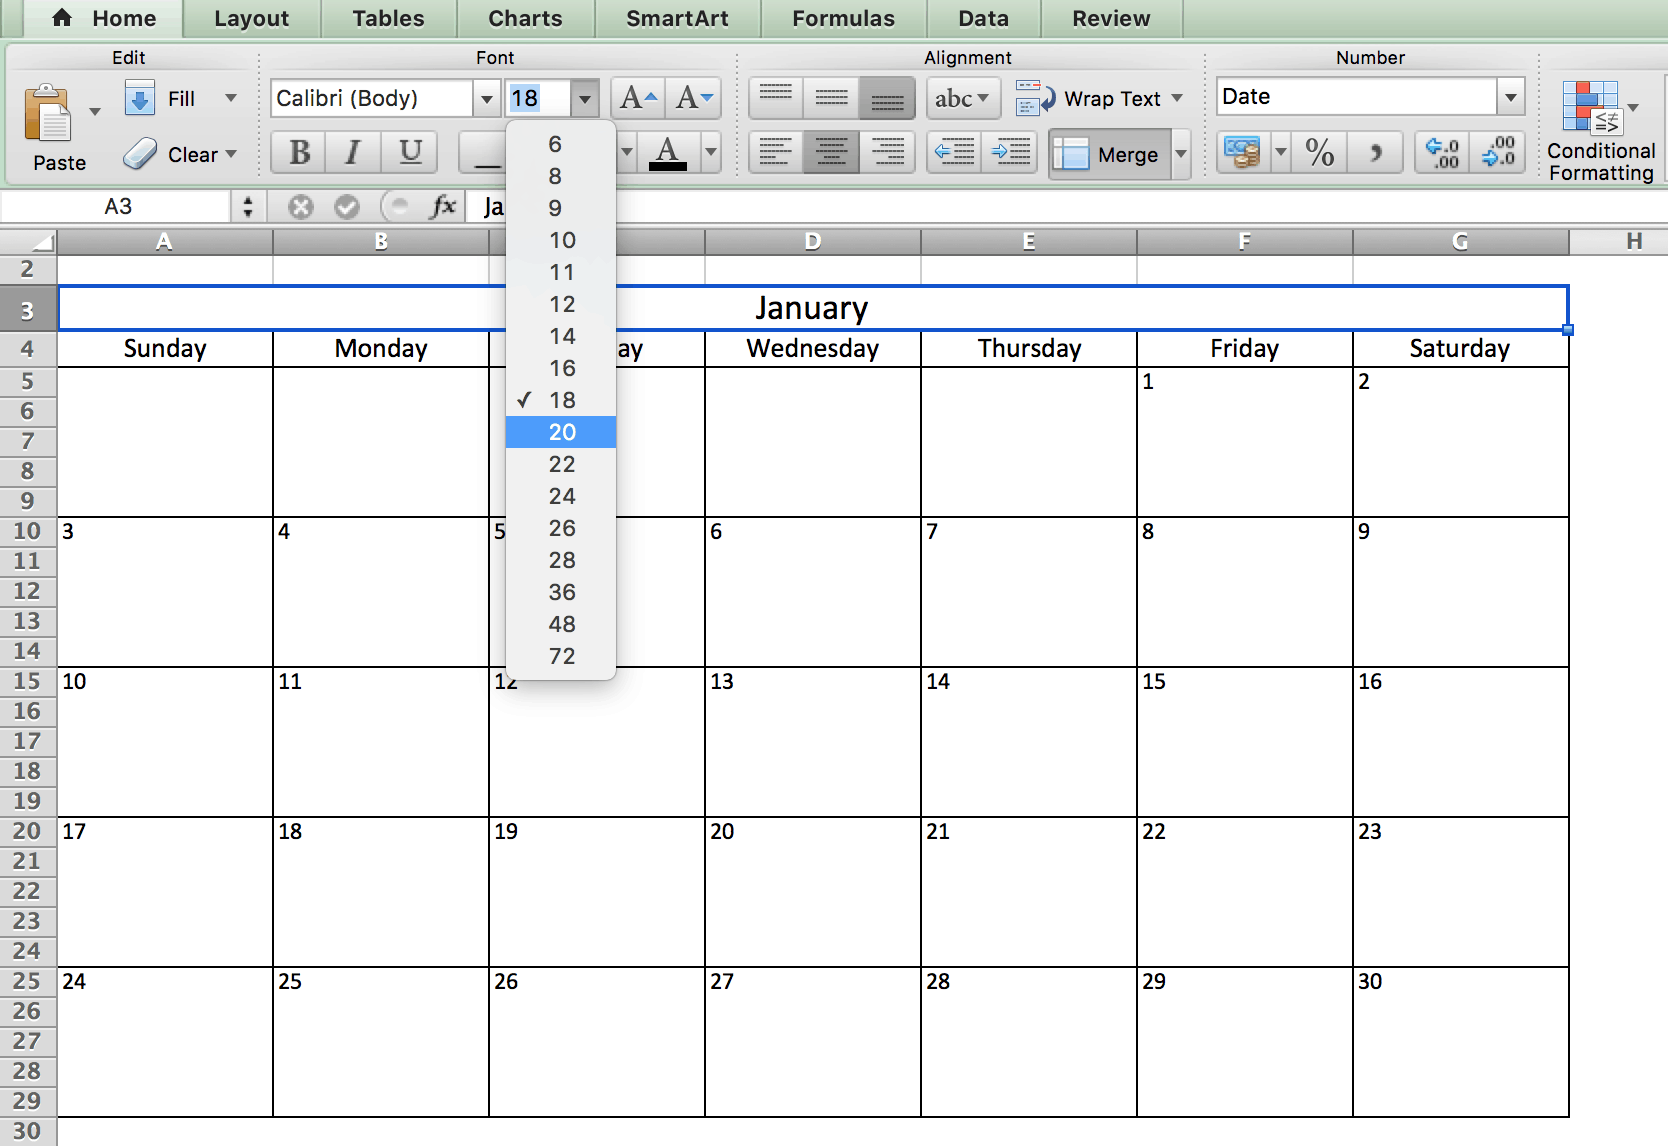 Calendar Templates Xls : Make a calendar in excel includes free template